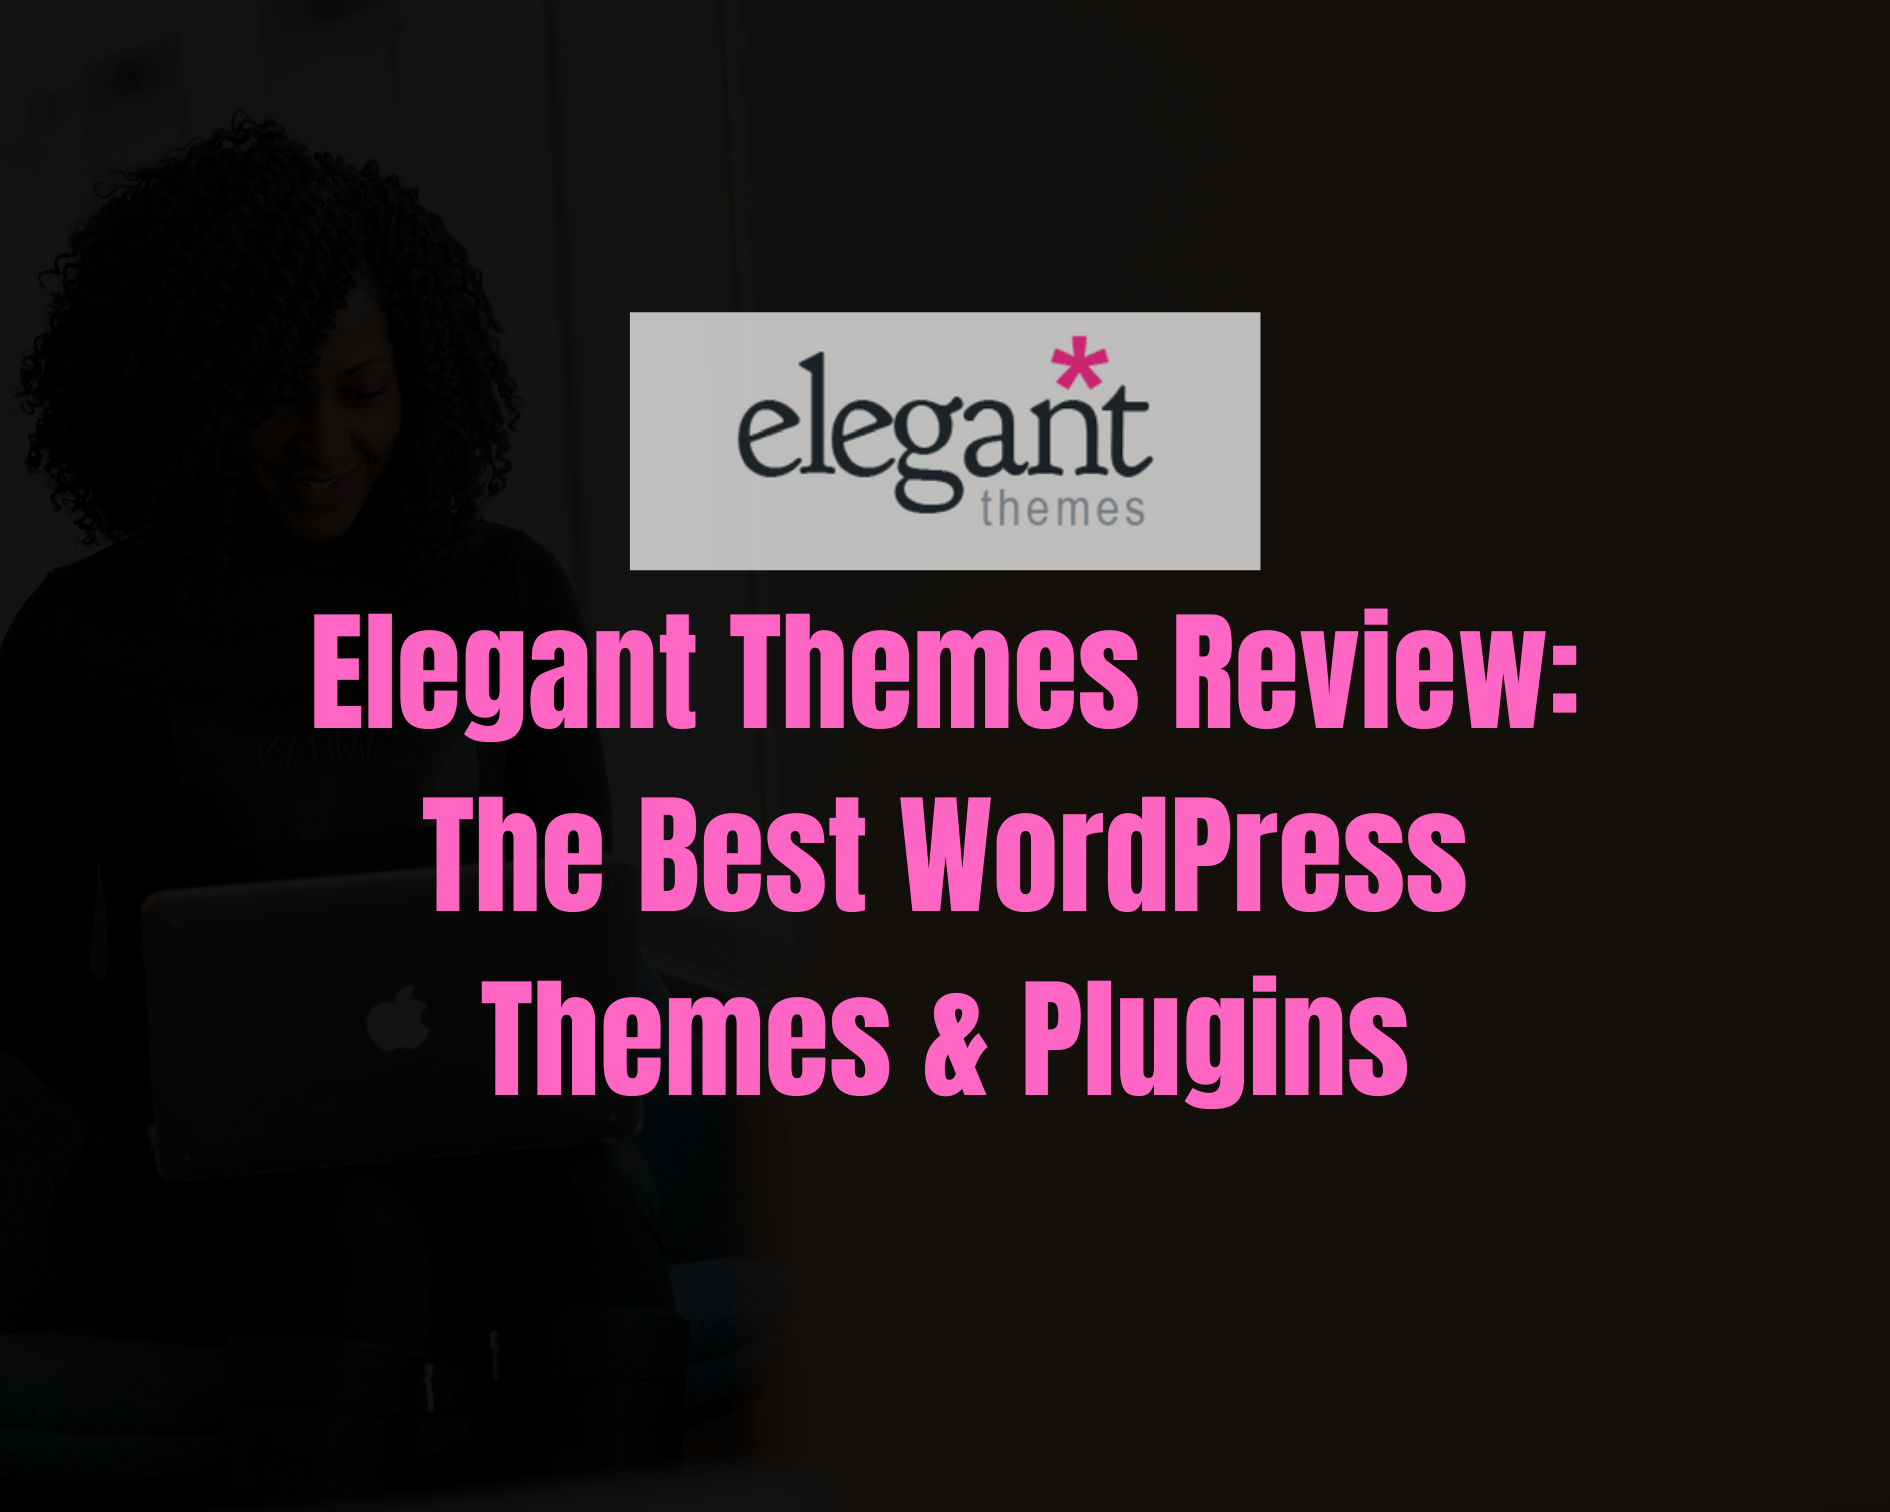 Online Voucher Code 20 Elegant Themes June